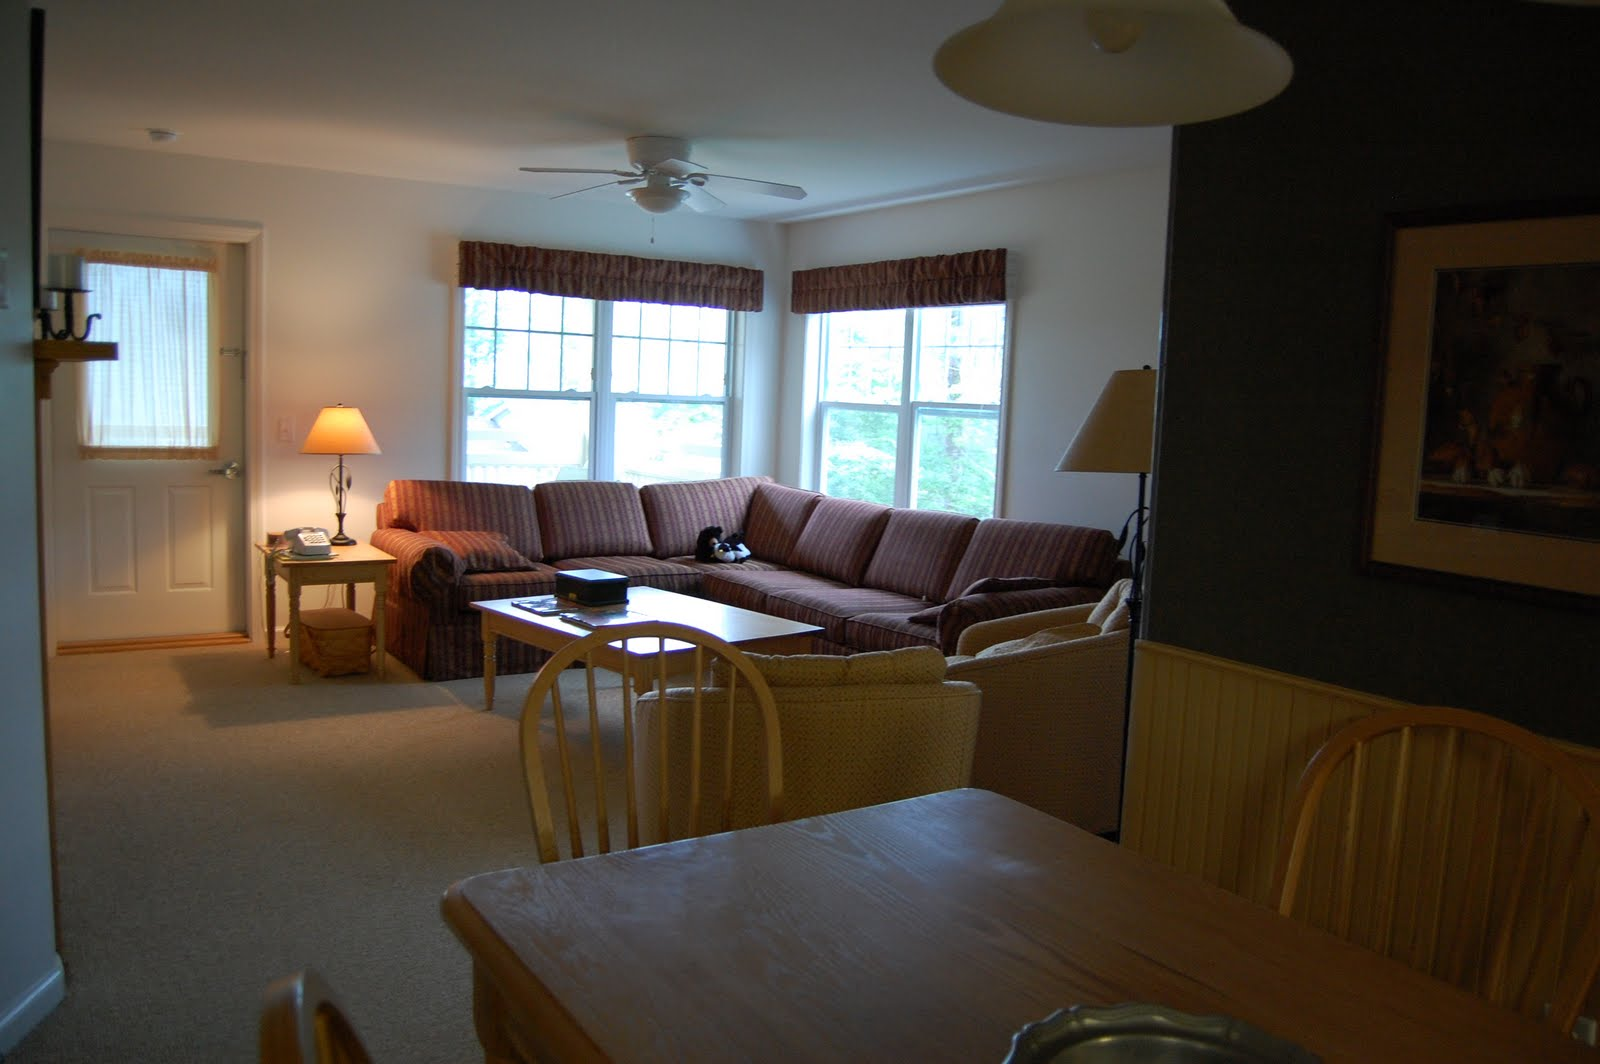 One Bedroom Condos For Sale Staten Island Ny